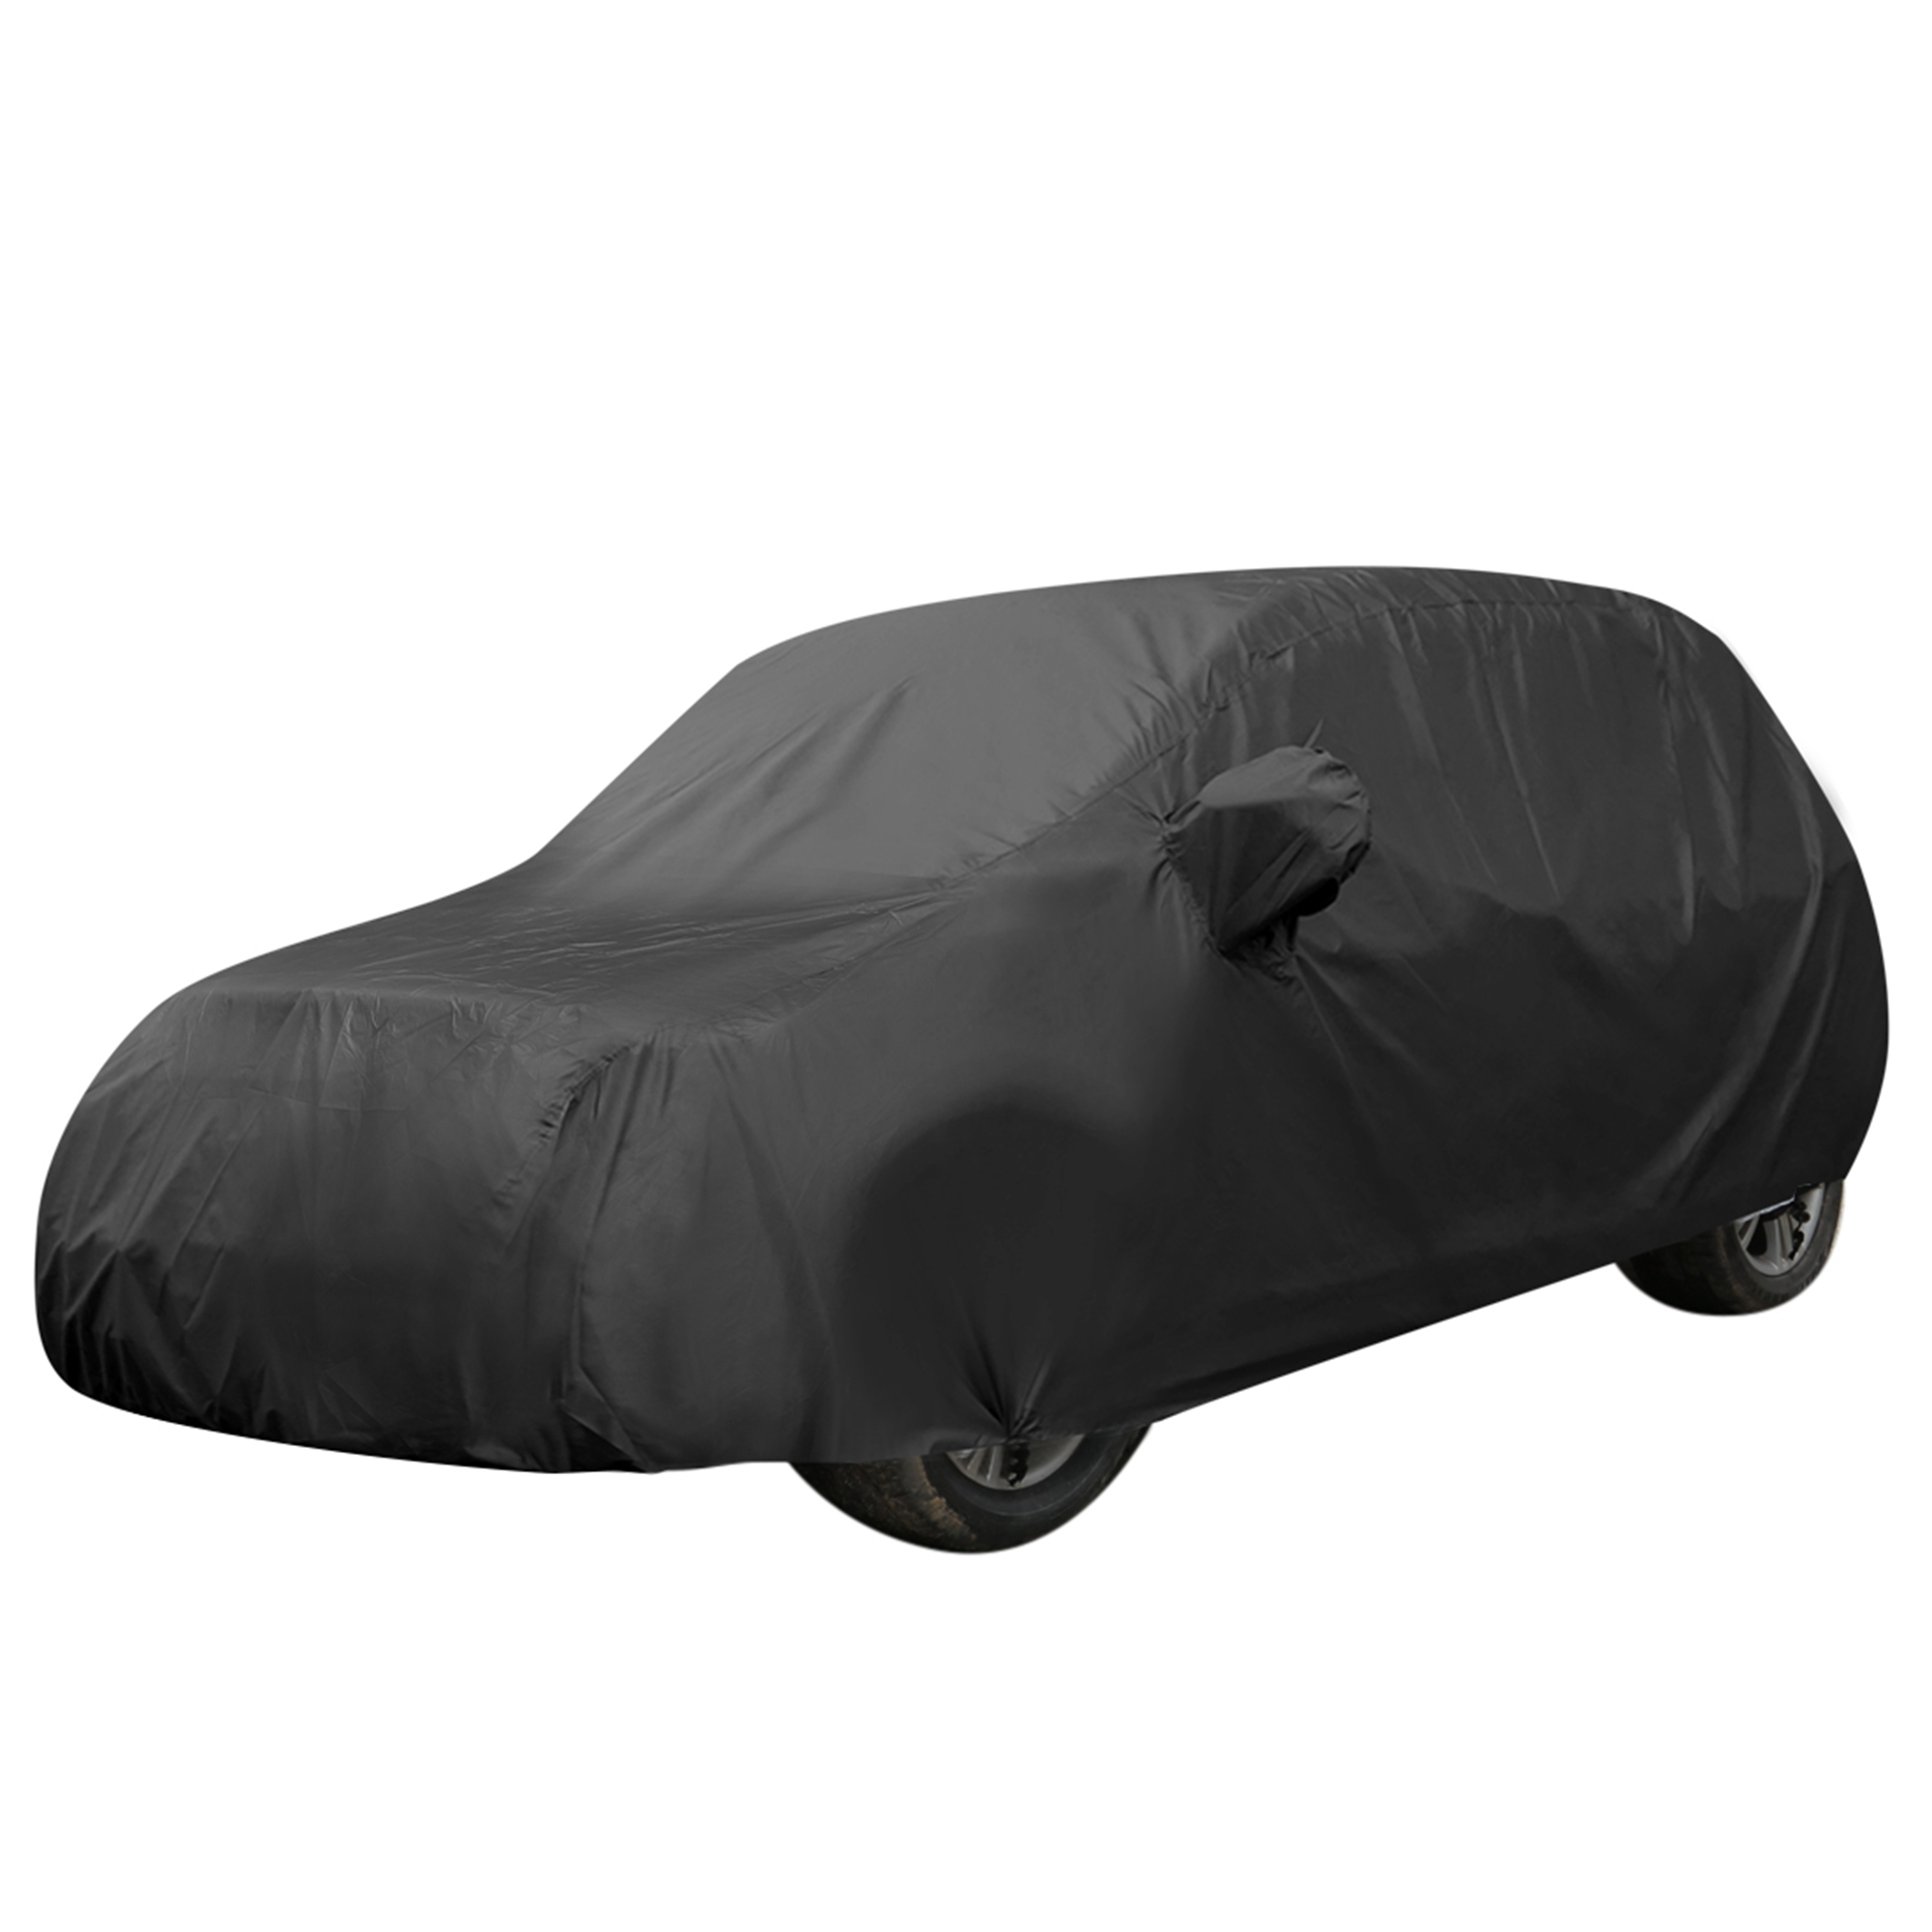 Black Breathable Waterproof Car Cover w Mirror Pocket YL